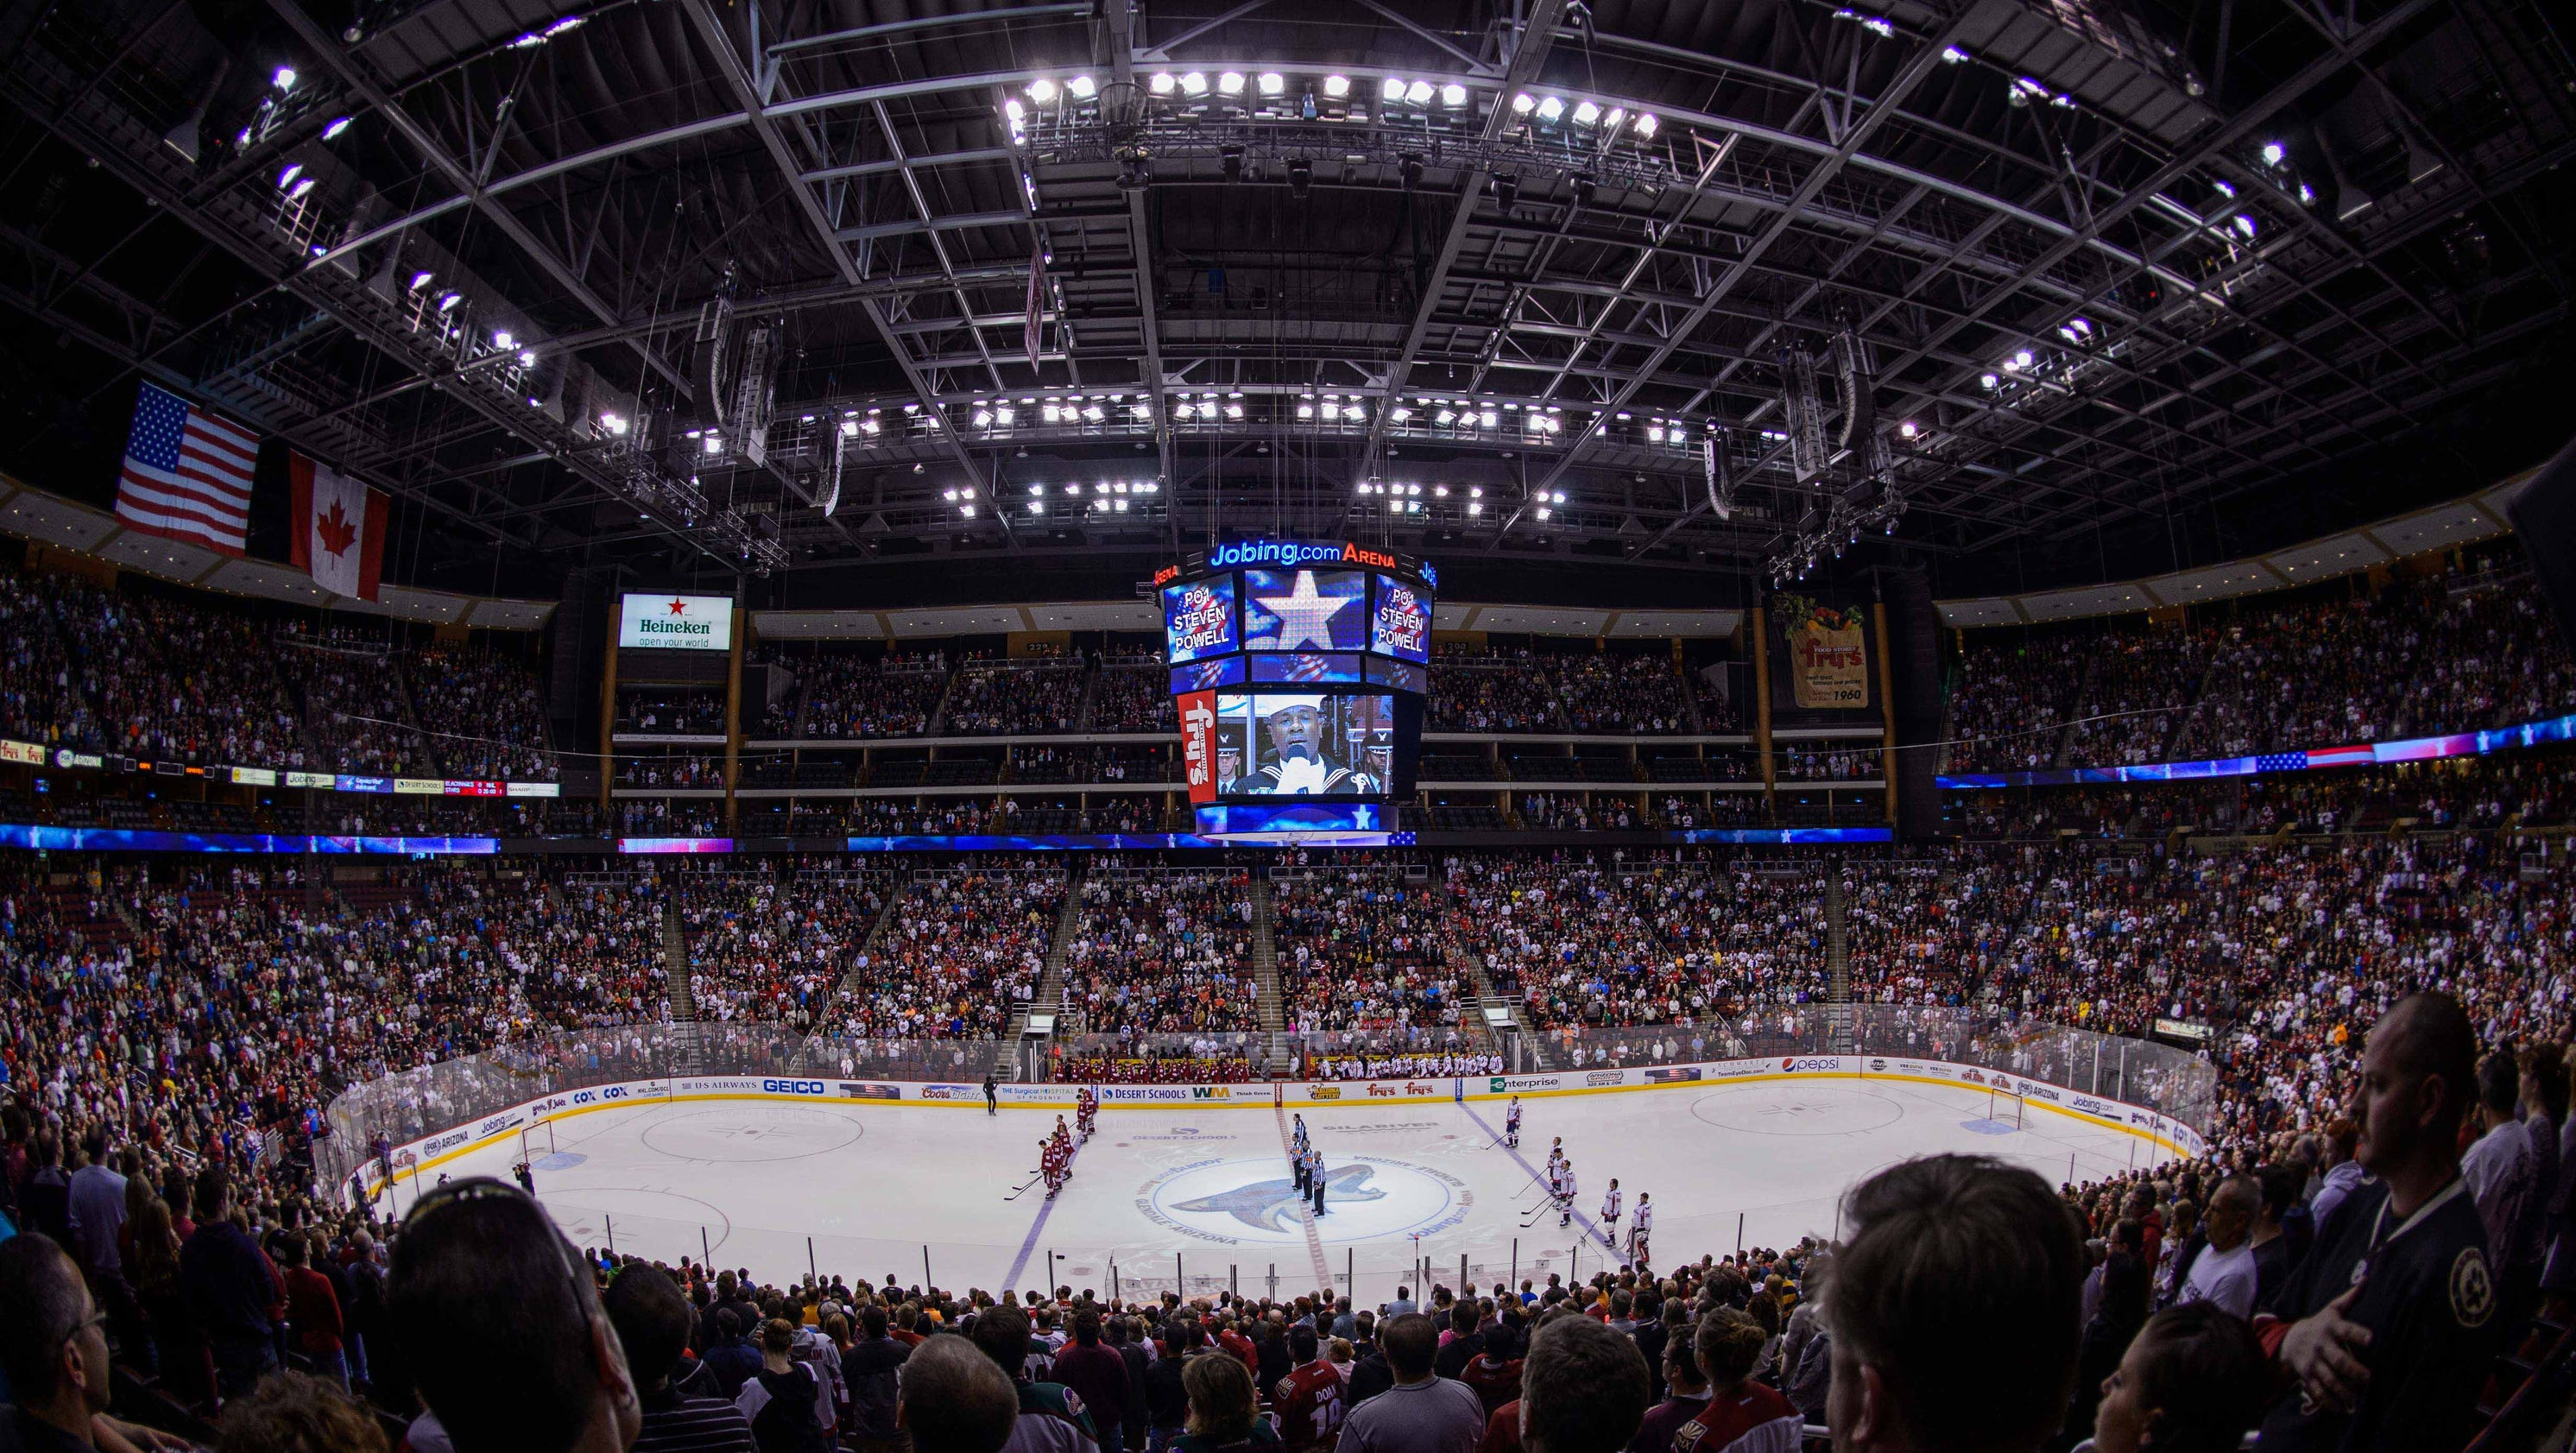 Arizona coyotes 39 home now officially gila river arena for Today s interiors phoenix